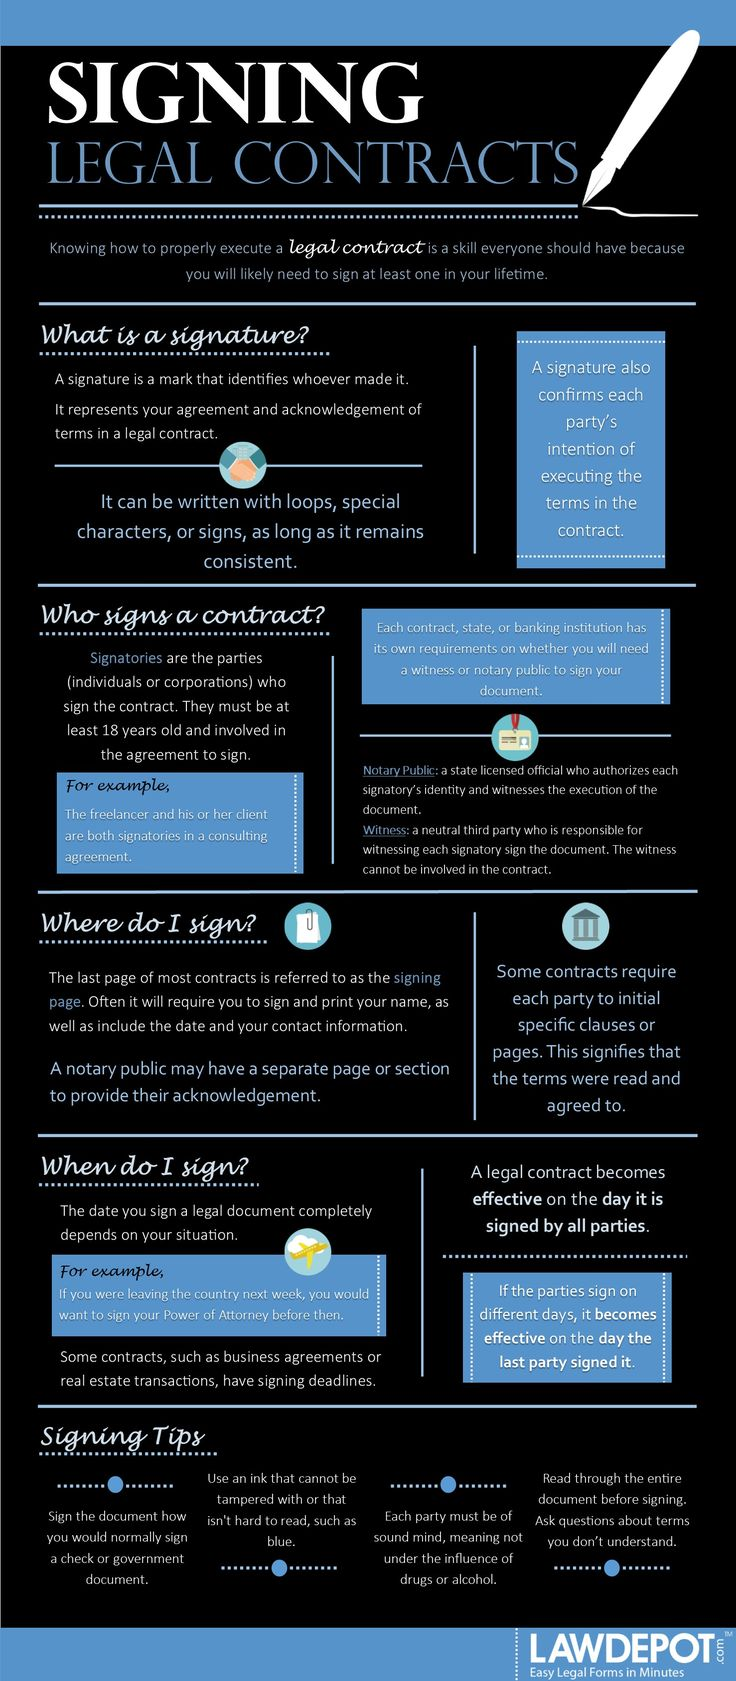 Contracts law offer and acceptance 4 law school - Learn The Basics Of Signing Legal Contracts Including When Where And How To Sign Your Name In A Legal Agreement